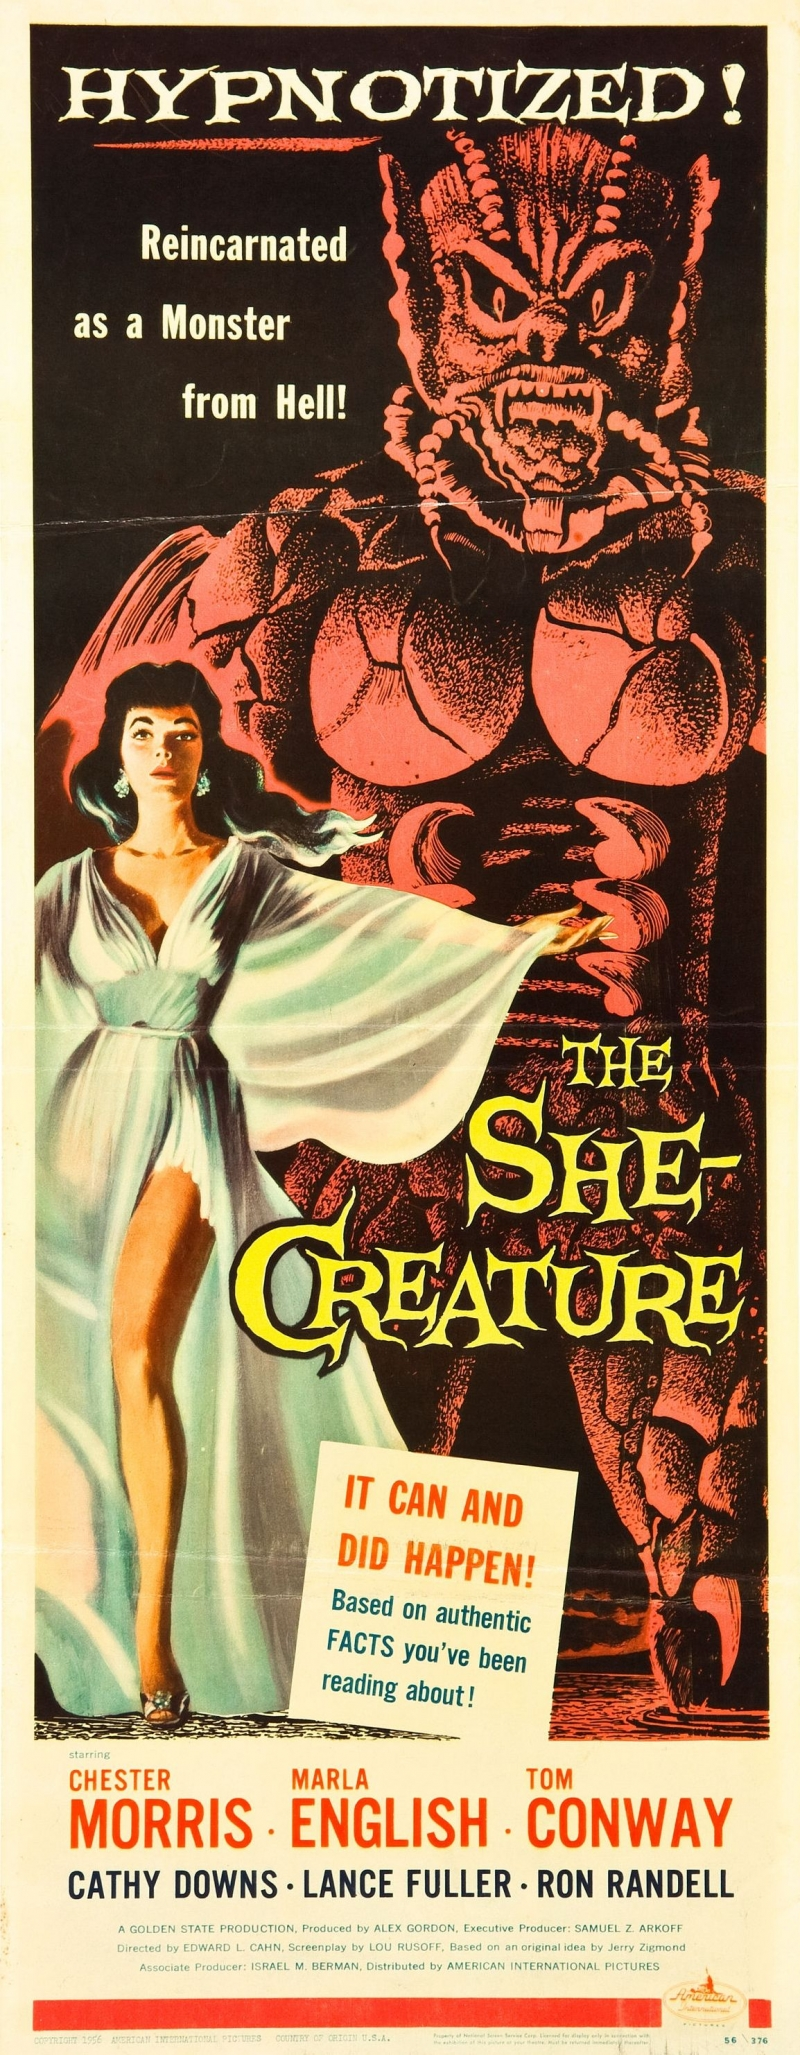 Monster movie posters